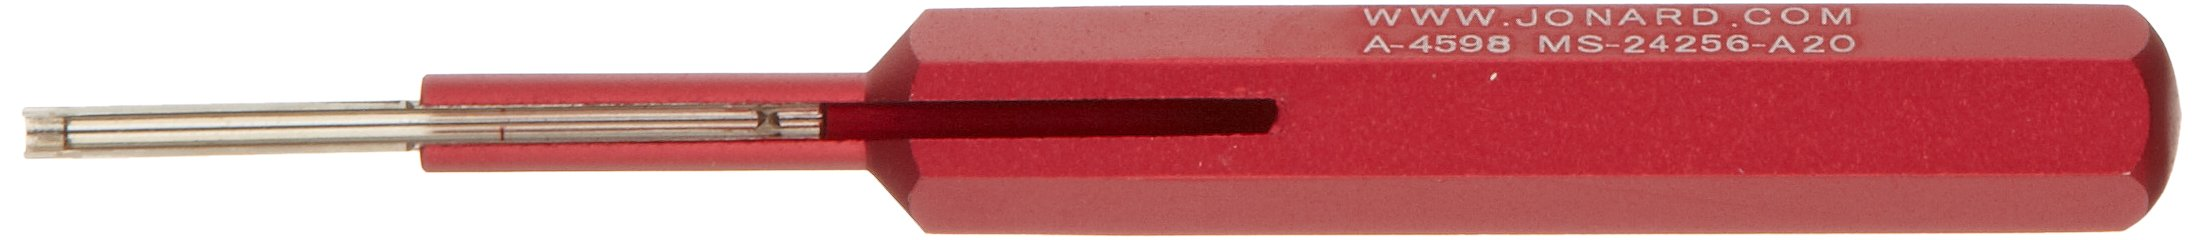 Jonard A-4598 Red Connector Insertion Tool, 0.040'' Contact